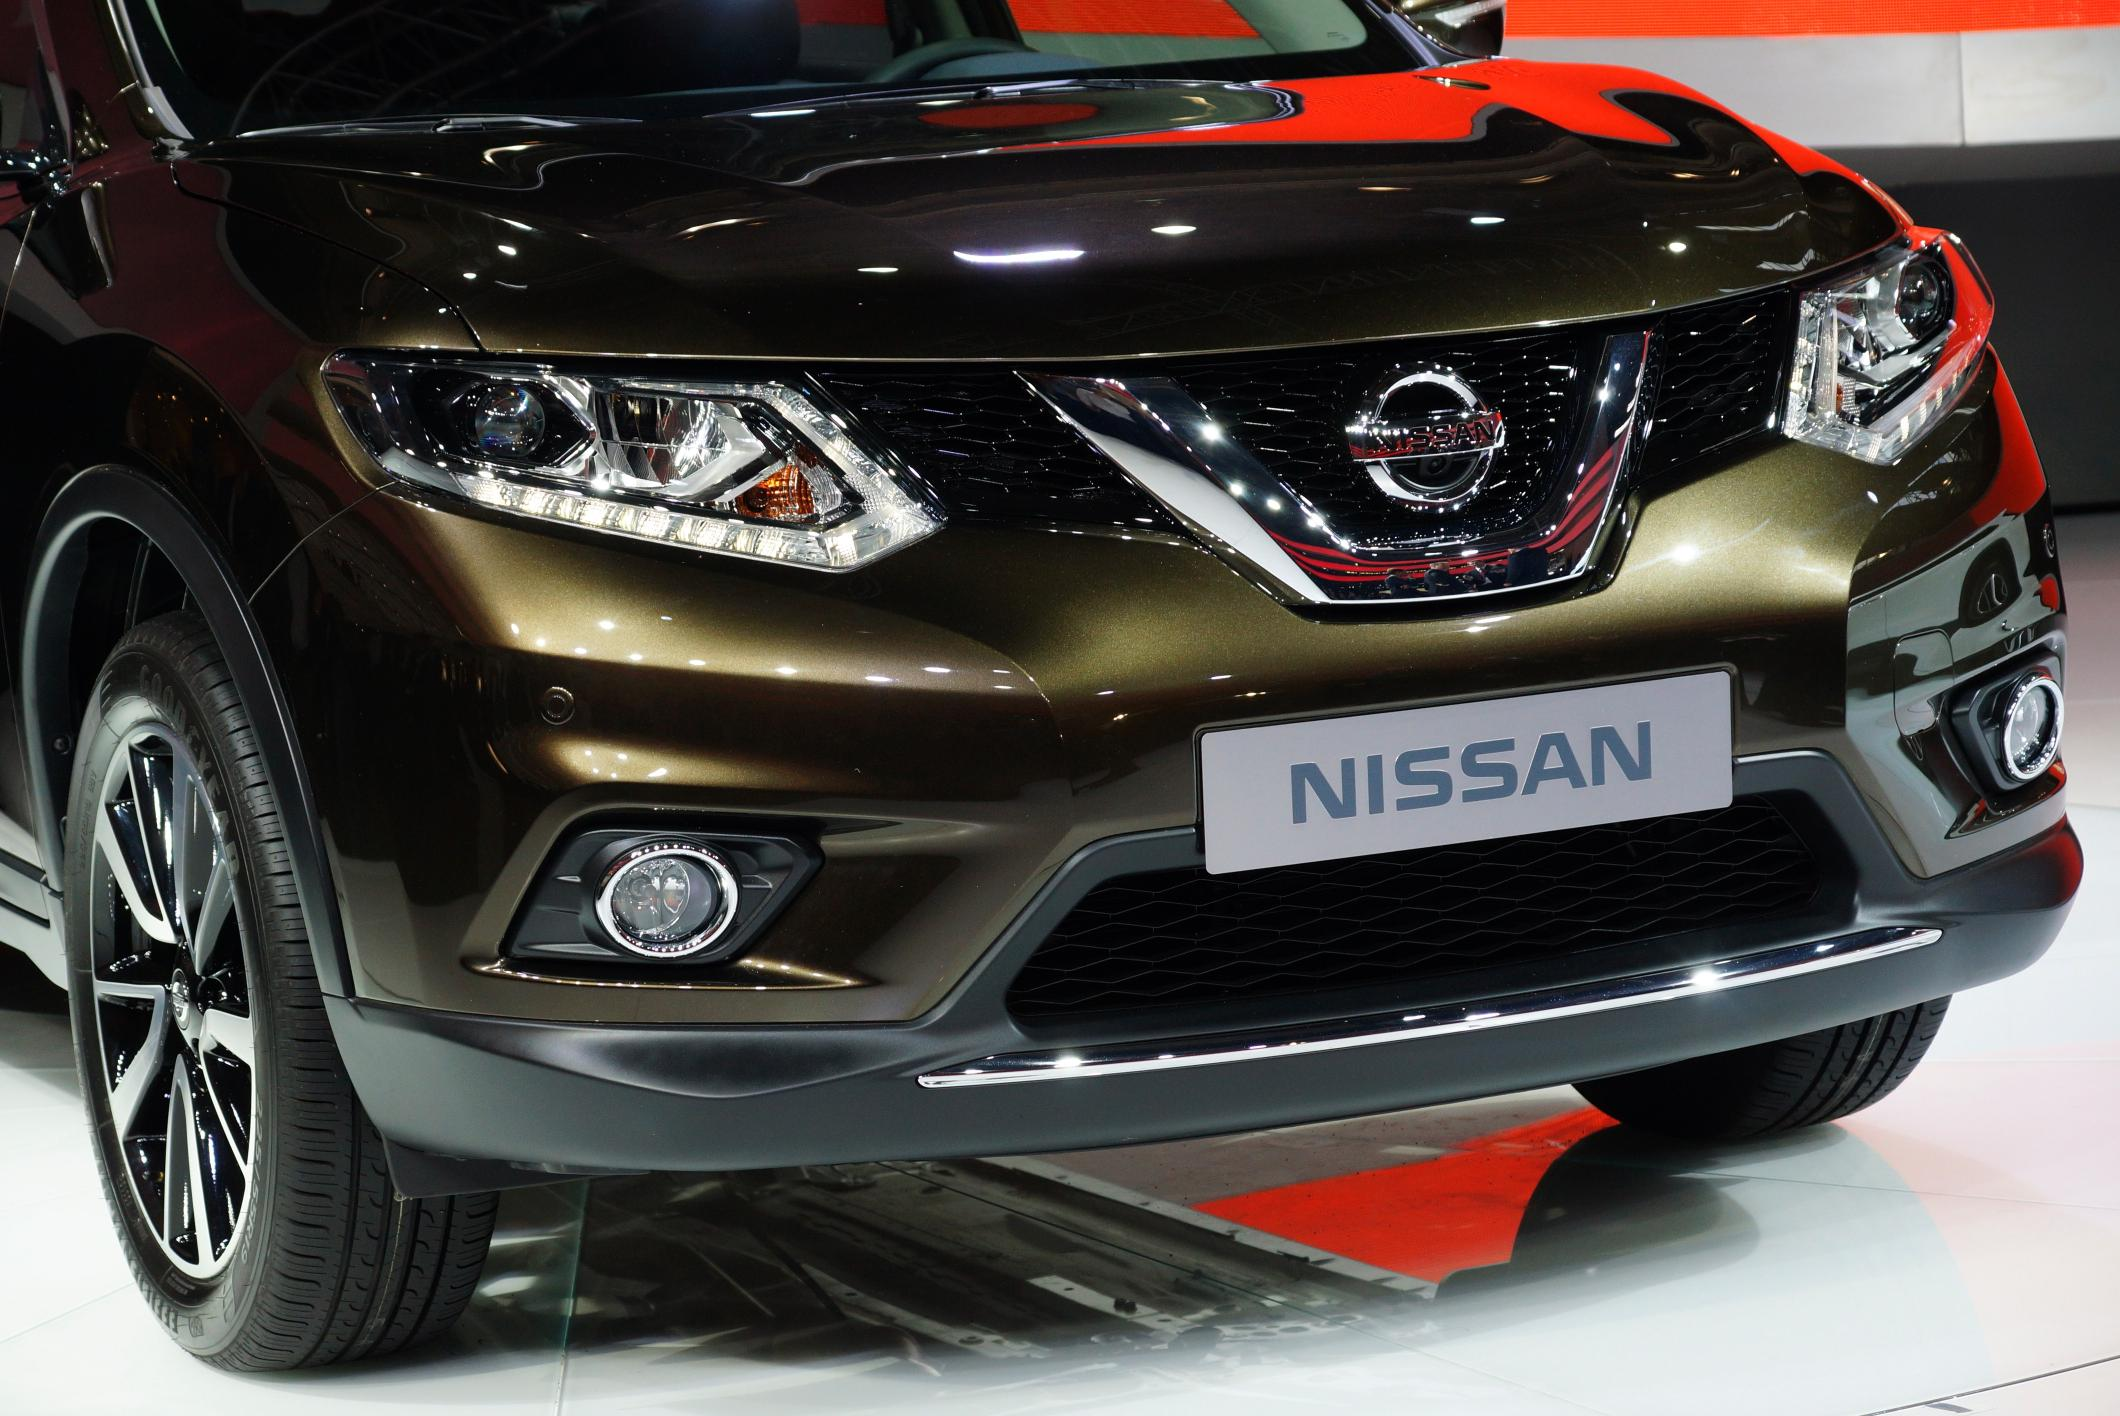 New Nissan X-Trail front grille